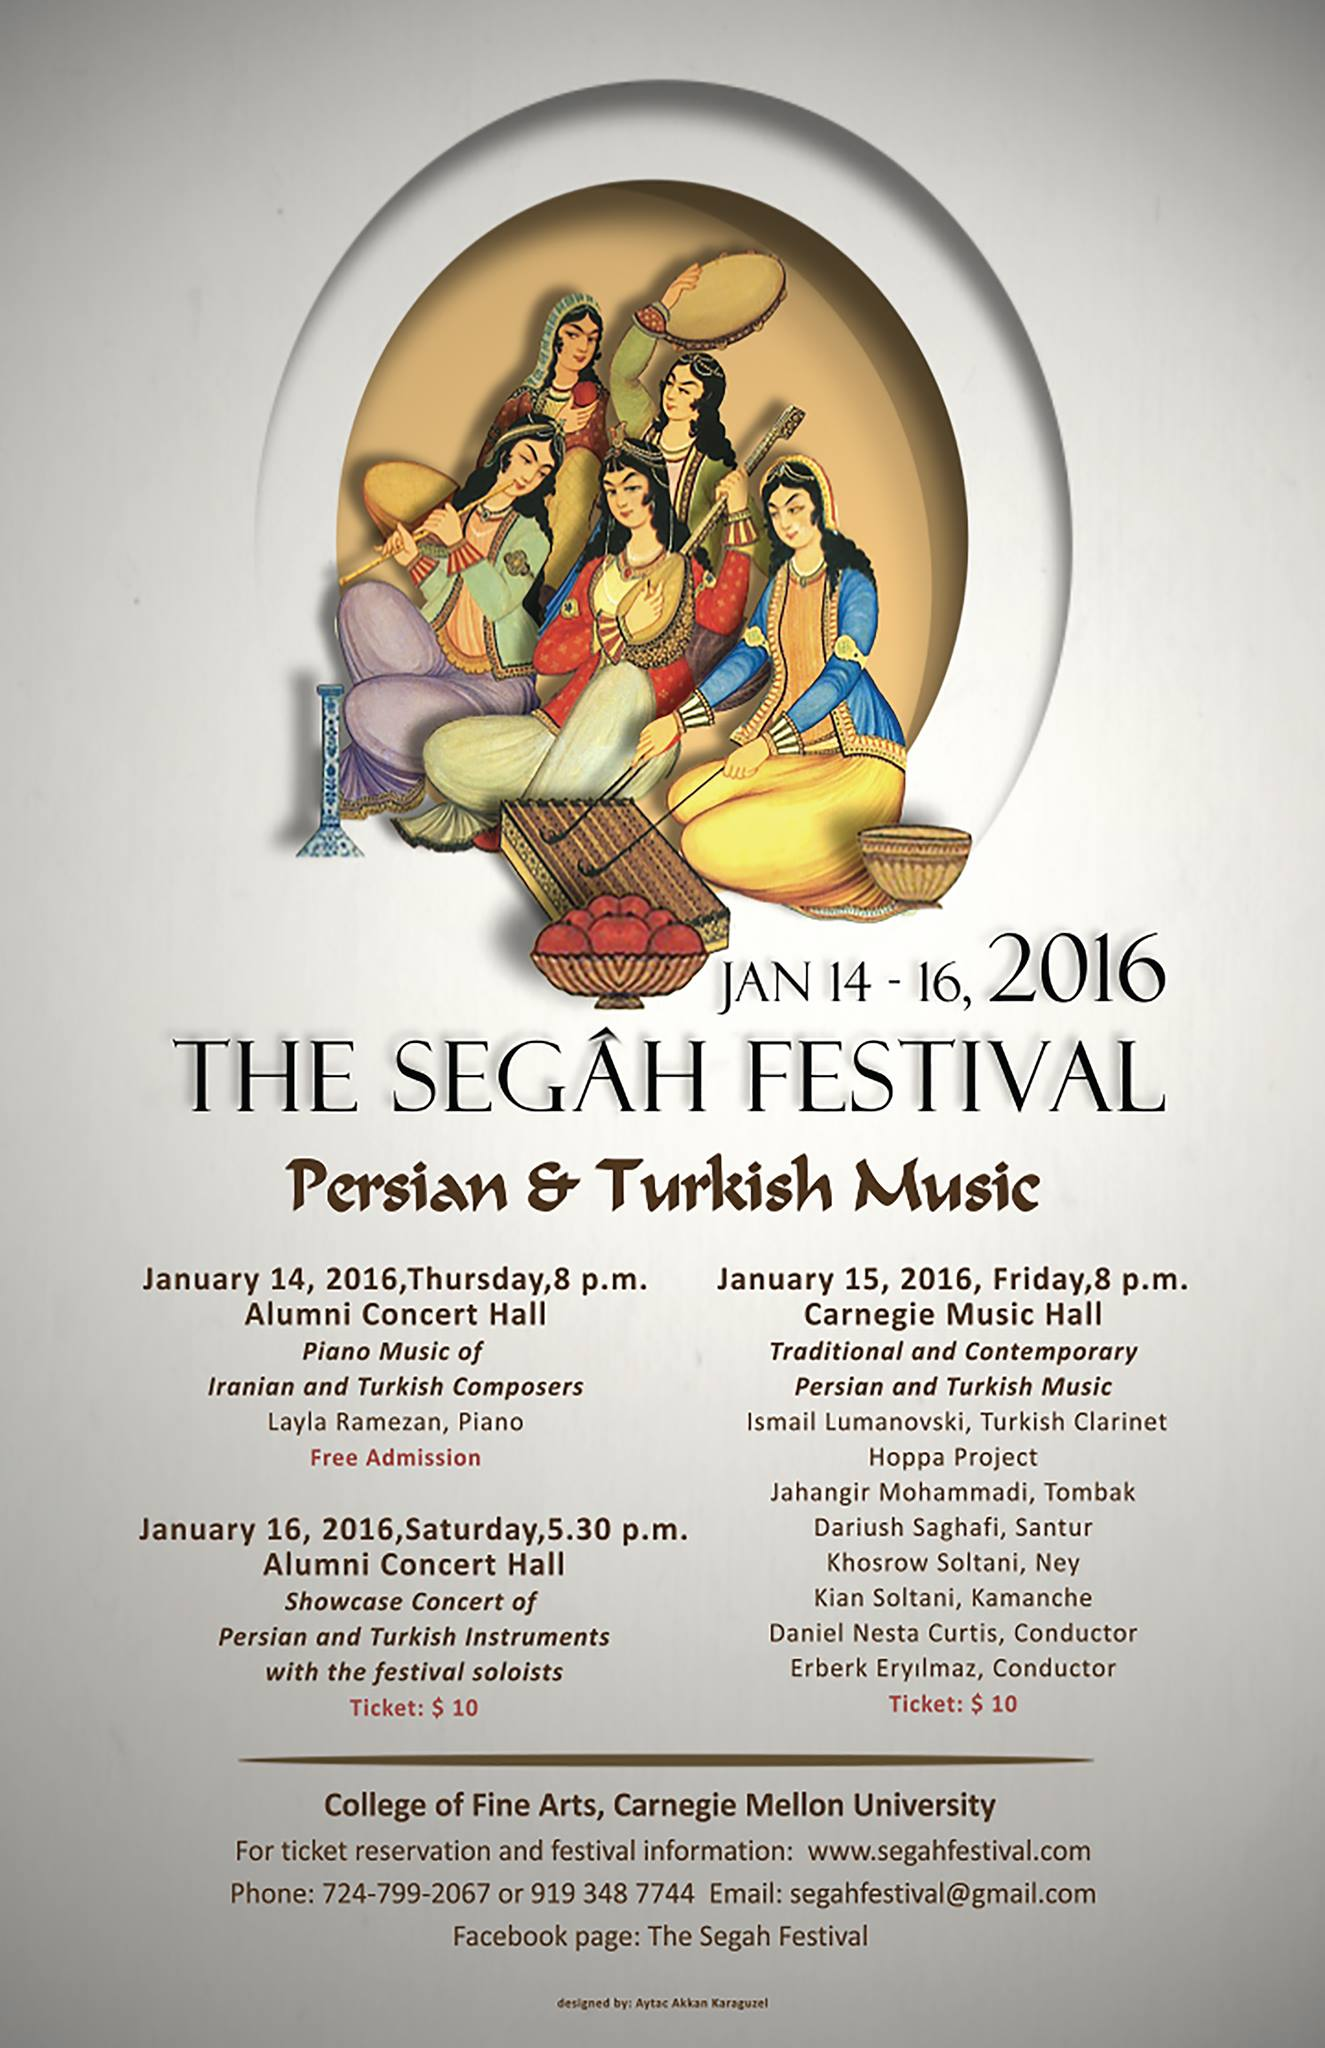 The Segah Festival Flyer